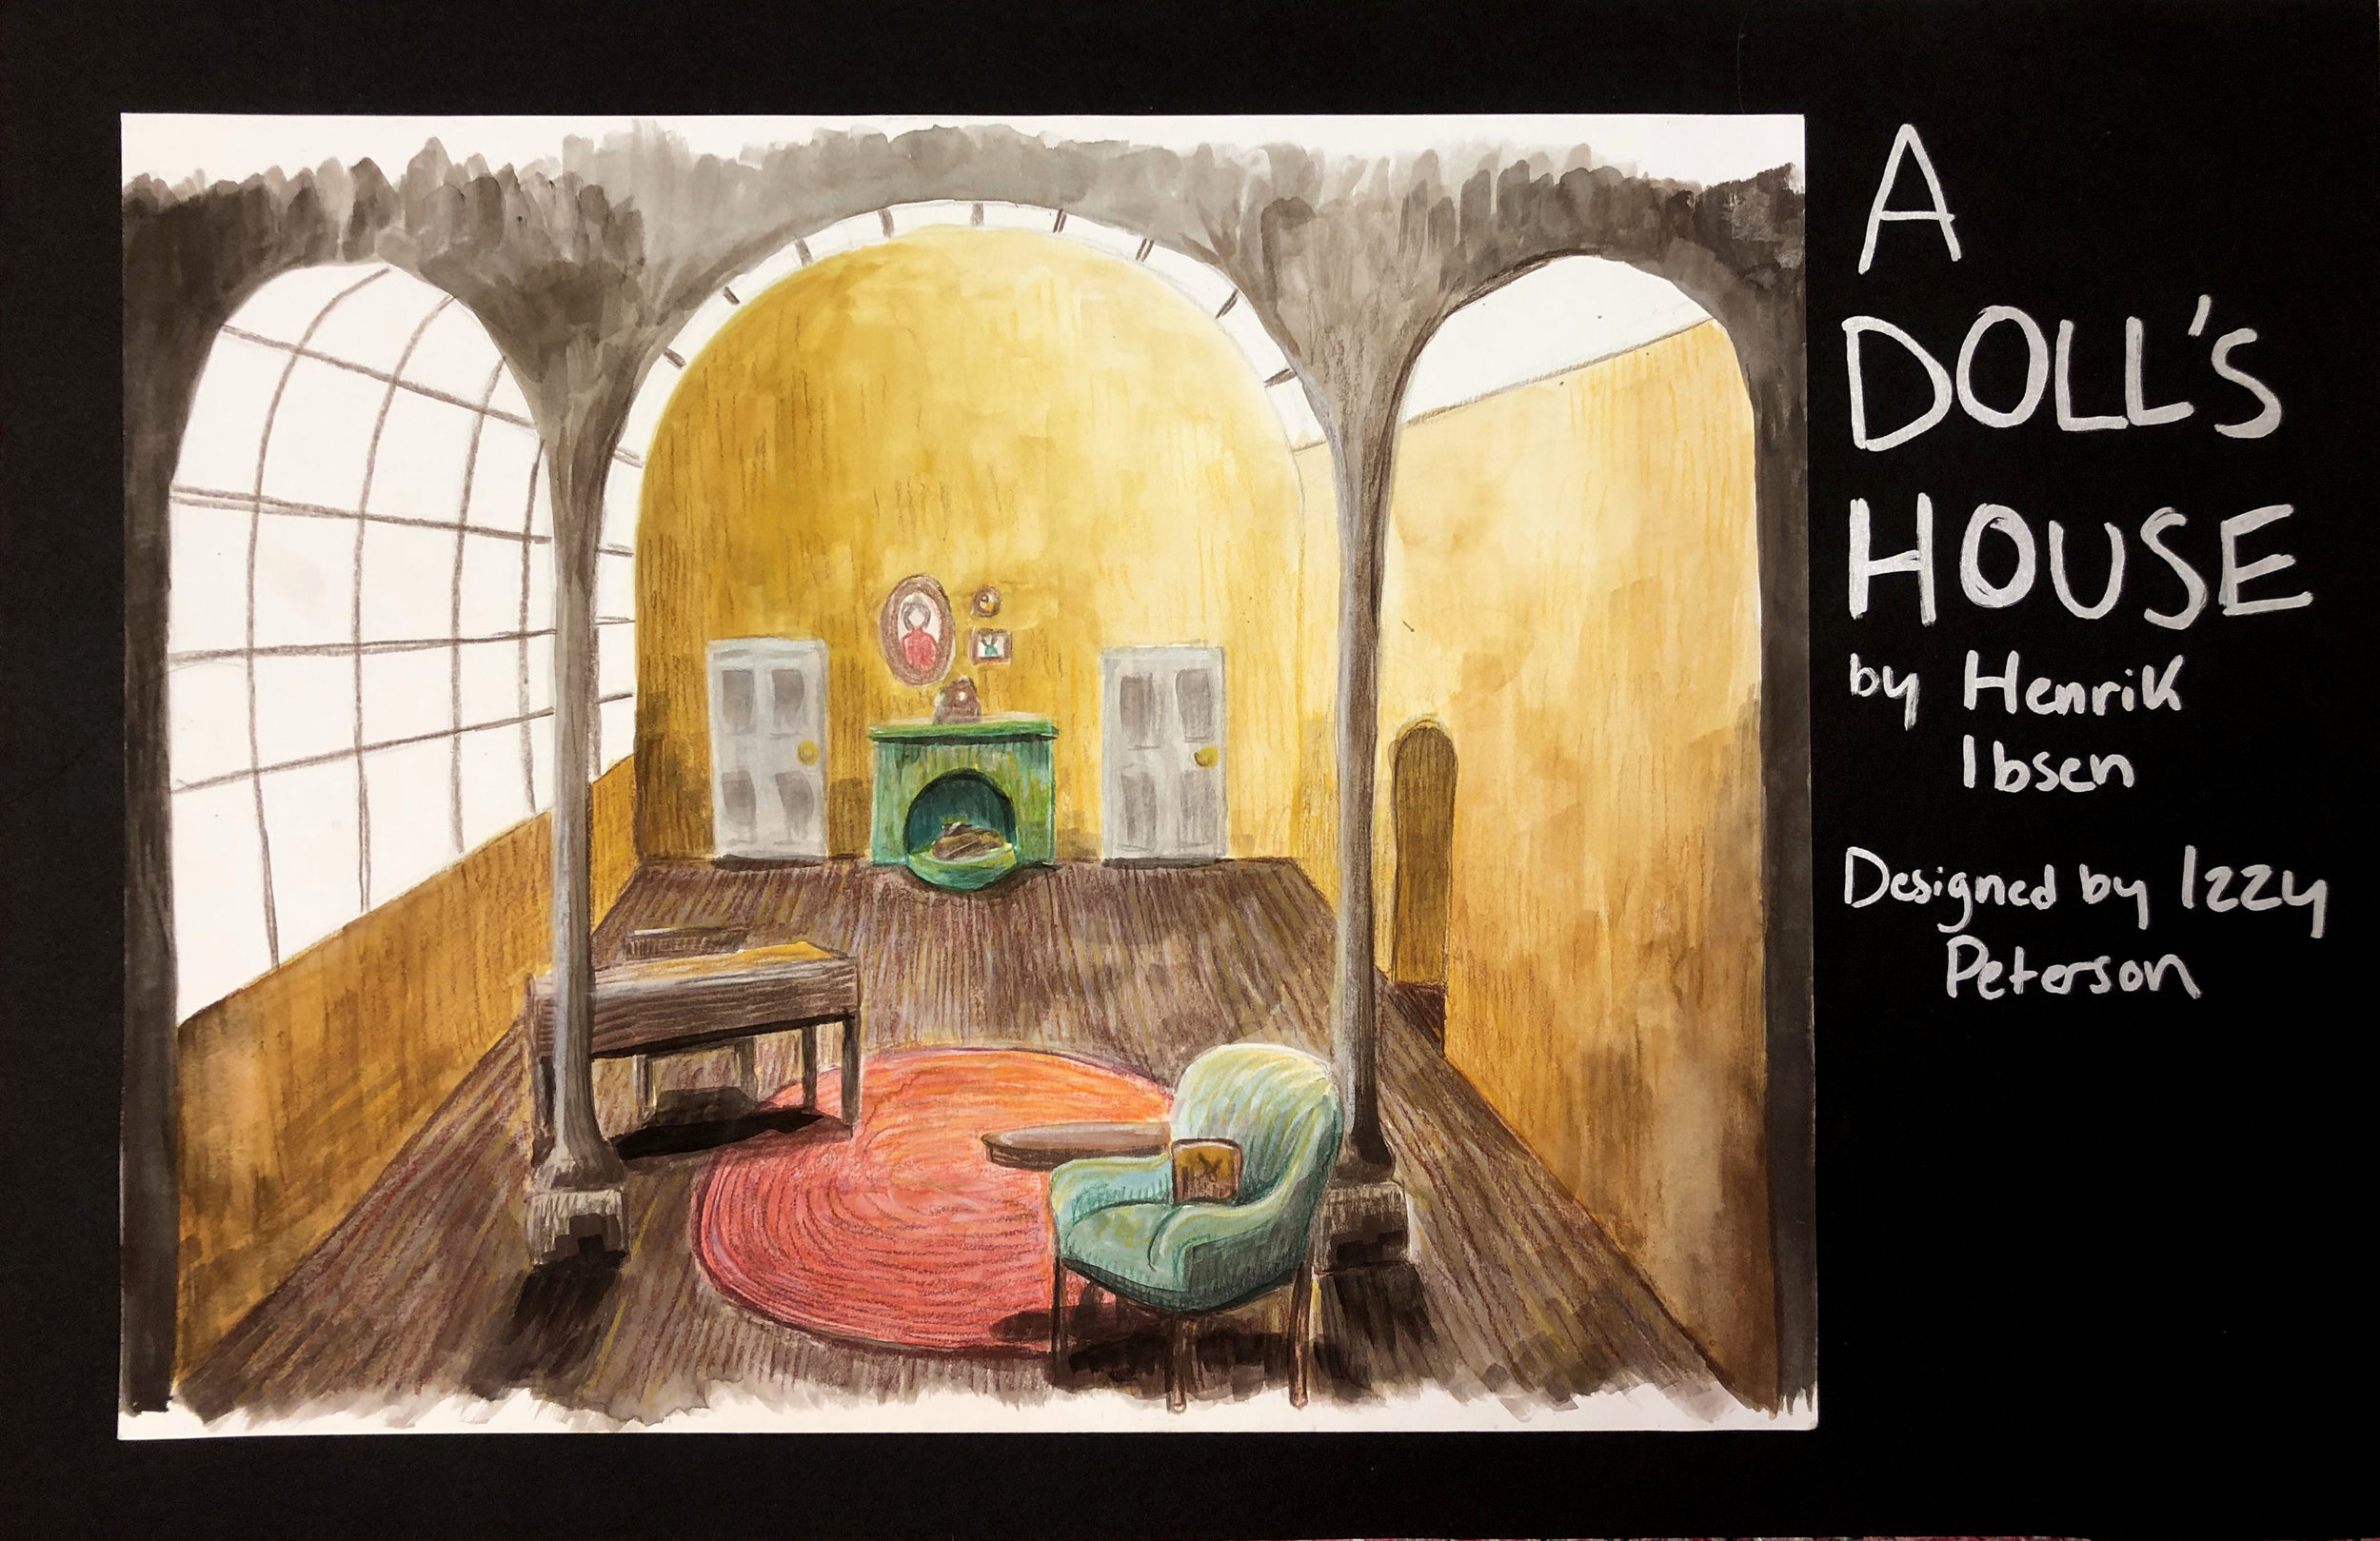 Concept Rendering for A Doll's House by Henrik Ibsen